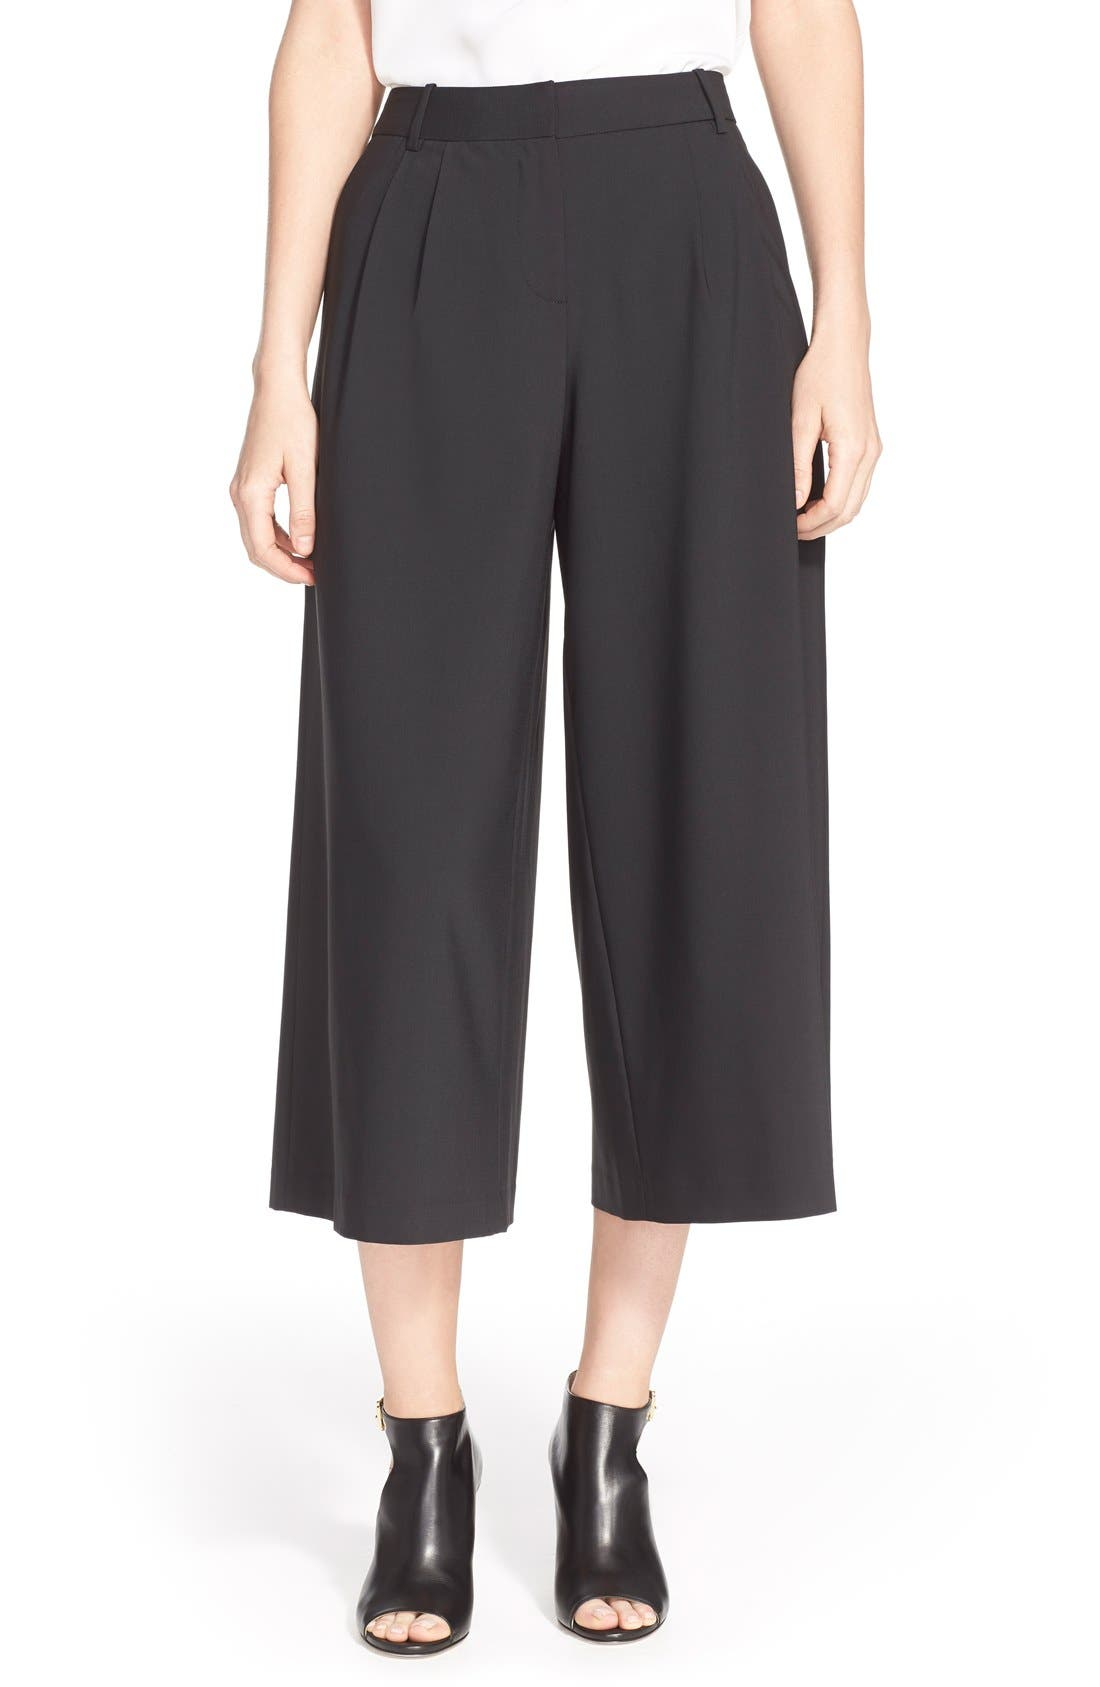 TIBI, Pleated Silk Culottes, Main thumbnail 1, color, 001